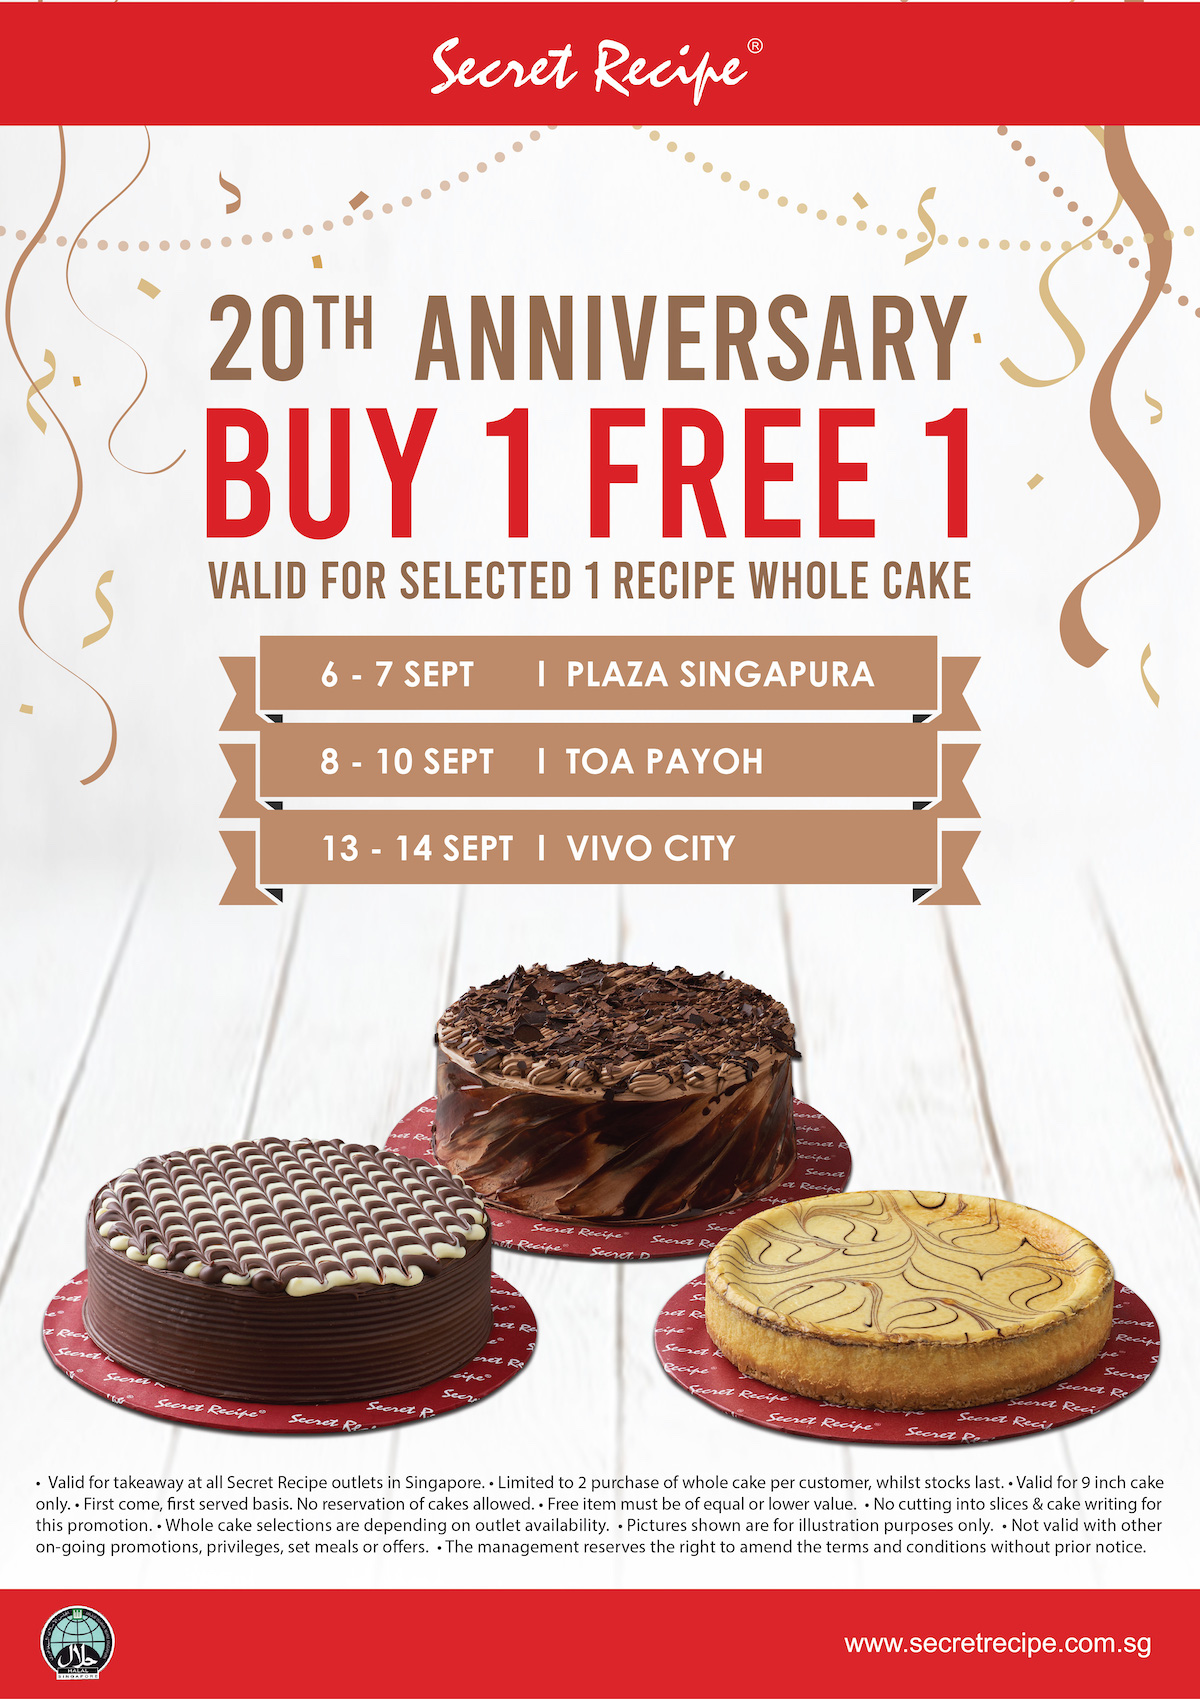 Secret Recipe Singapore 20th Anniversary Buy 1 FREE 1 Promotion 6-14 Sep 2019 | Why Not Deals & Promotions